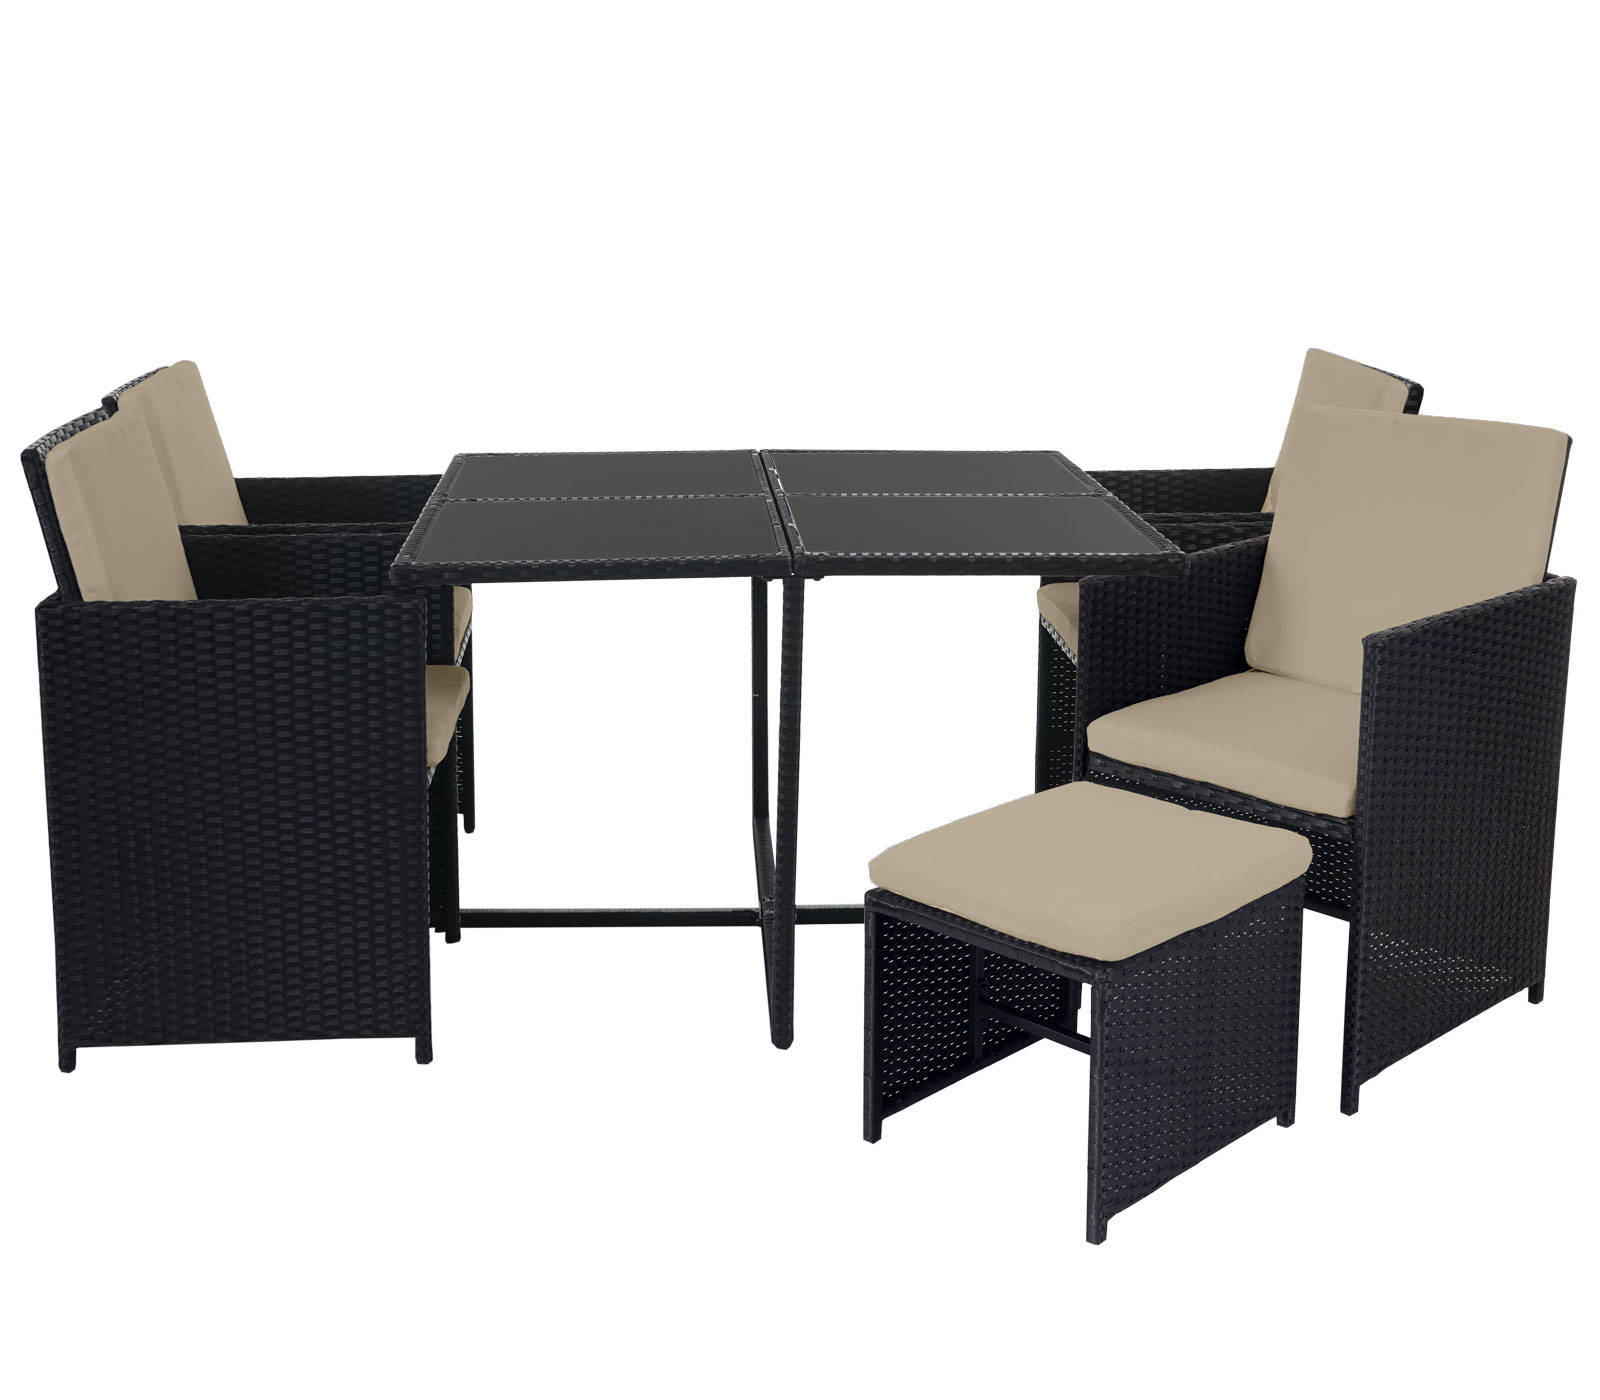 poly rattan garten garnitur lounge set sitzgruppe 4. Black Bedroom Furniture Sets. Home Design Ideas